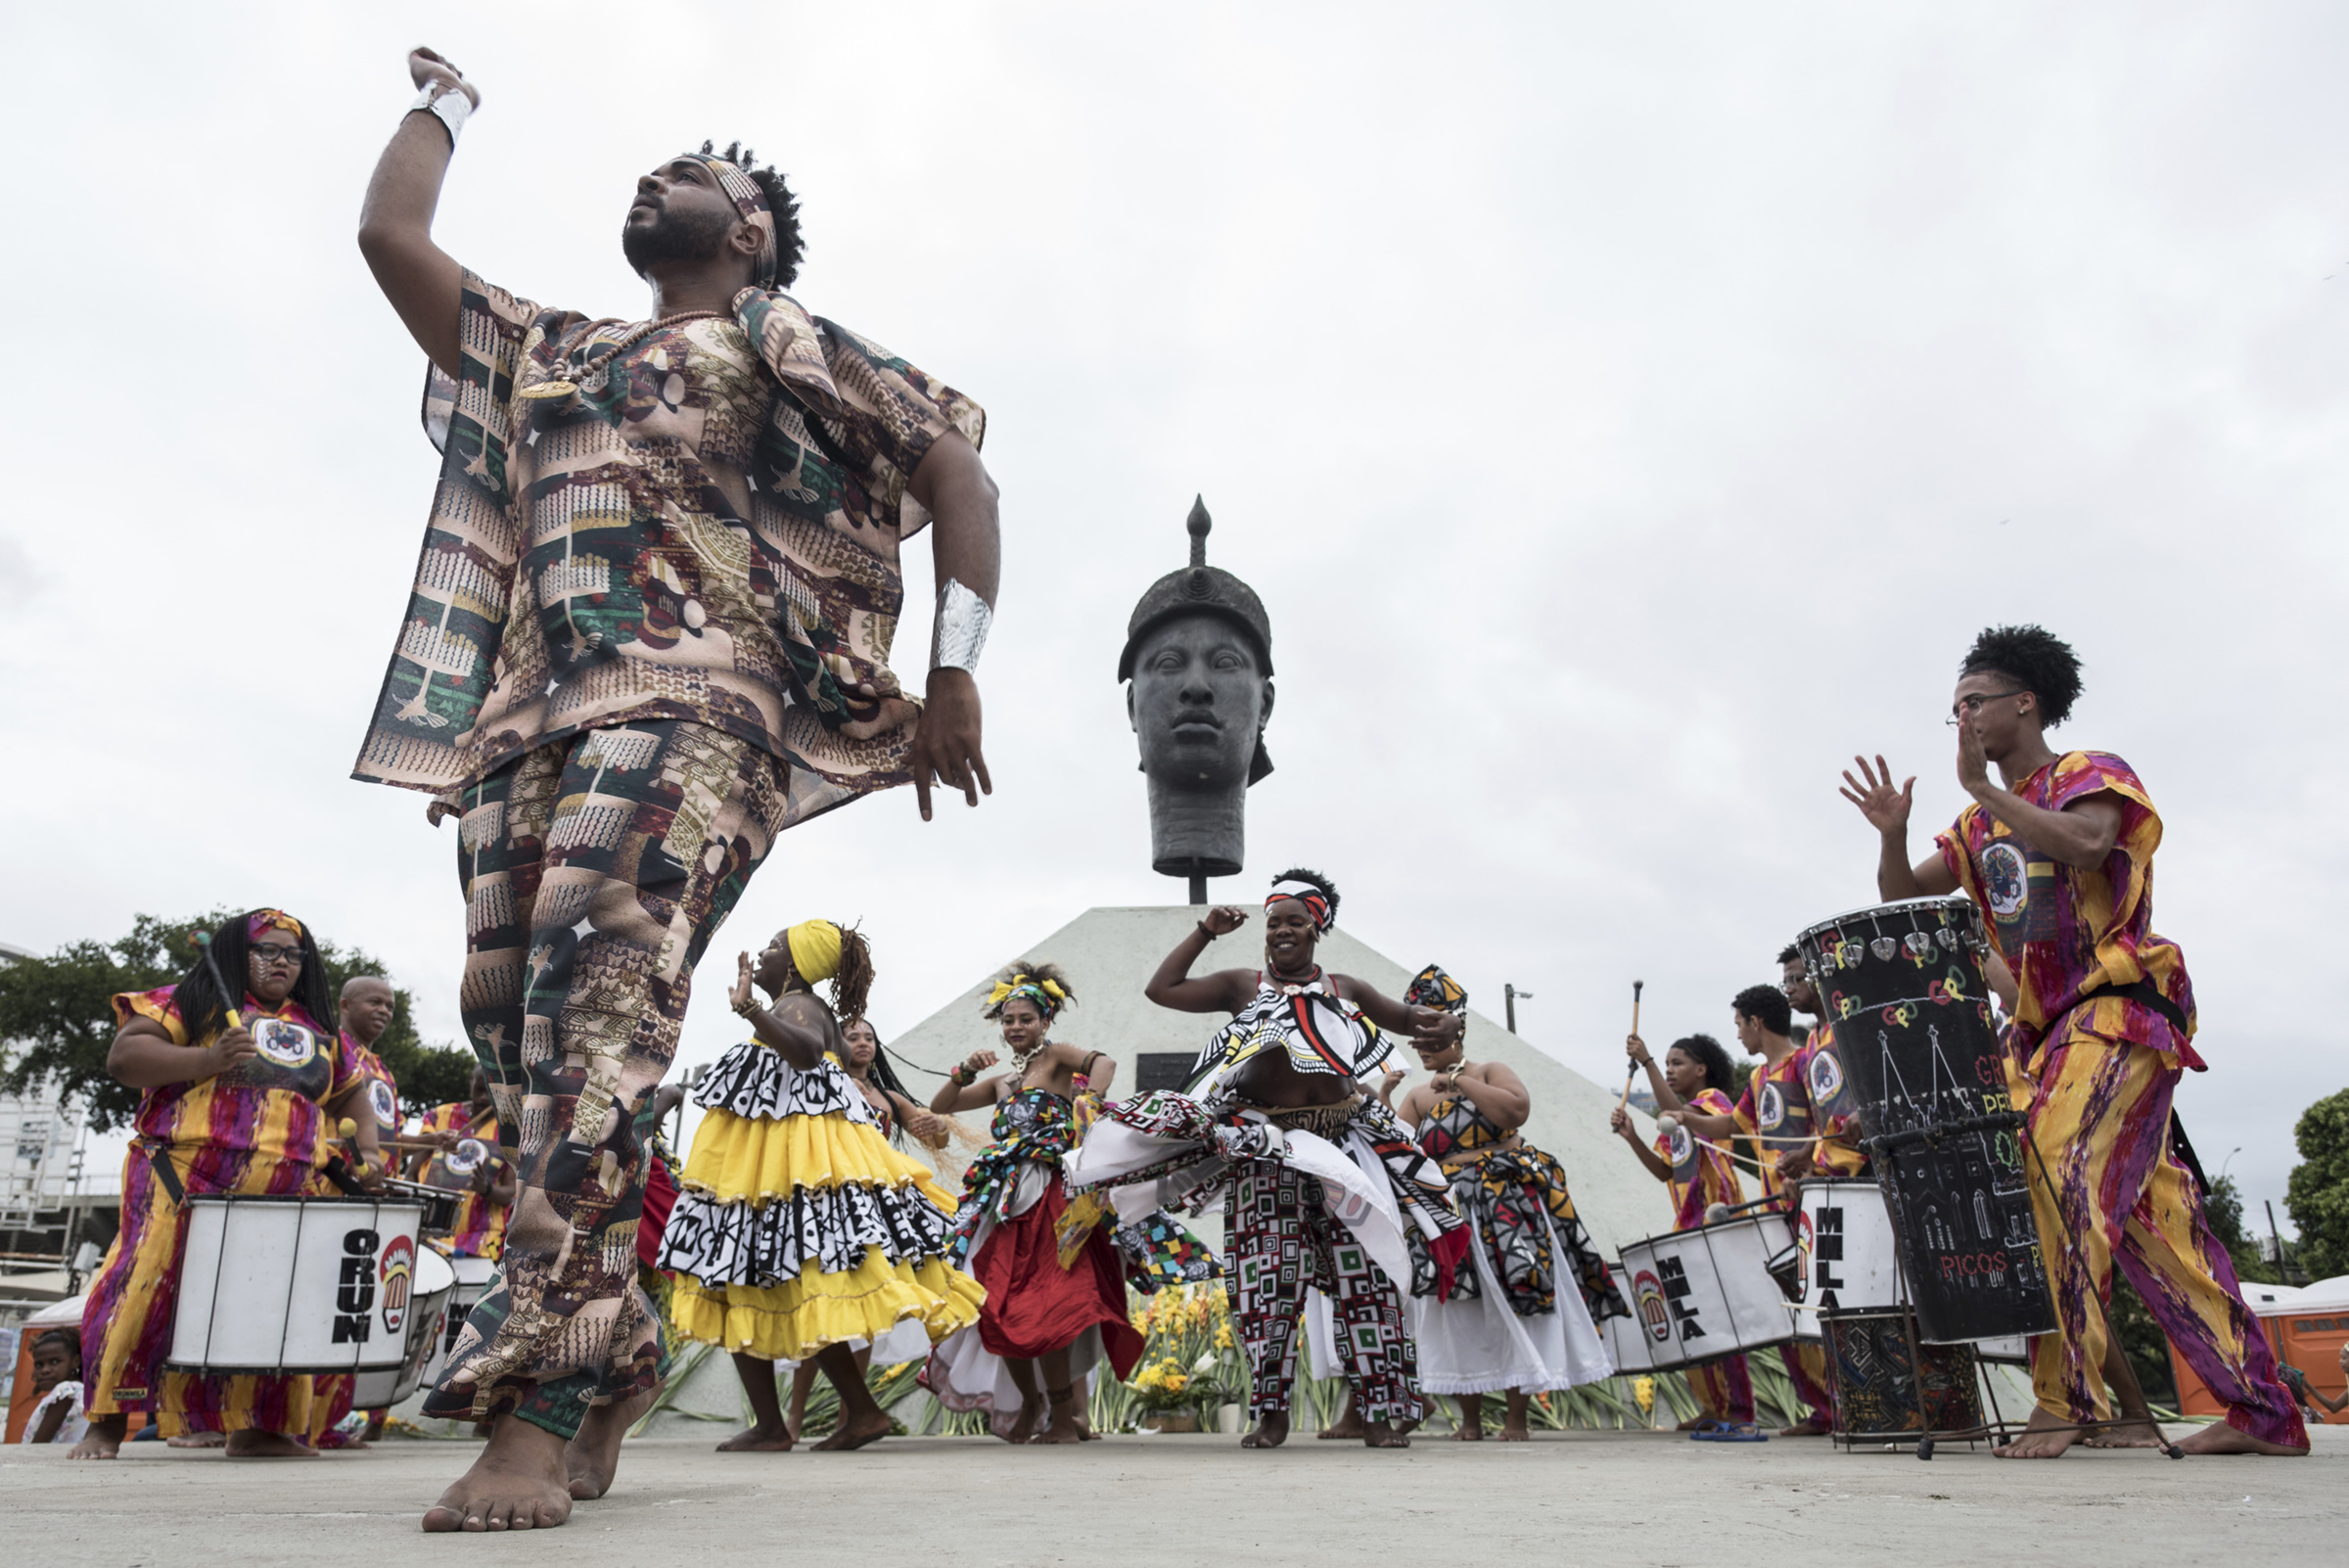 A man dances at a Black Awareness Day event in front of the monument honoring Zumbi dos Palmares, quilombo leader and symbol of the fight against slavery in Brazil, in Rio de Janeiro on Nov. 20, 2019.